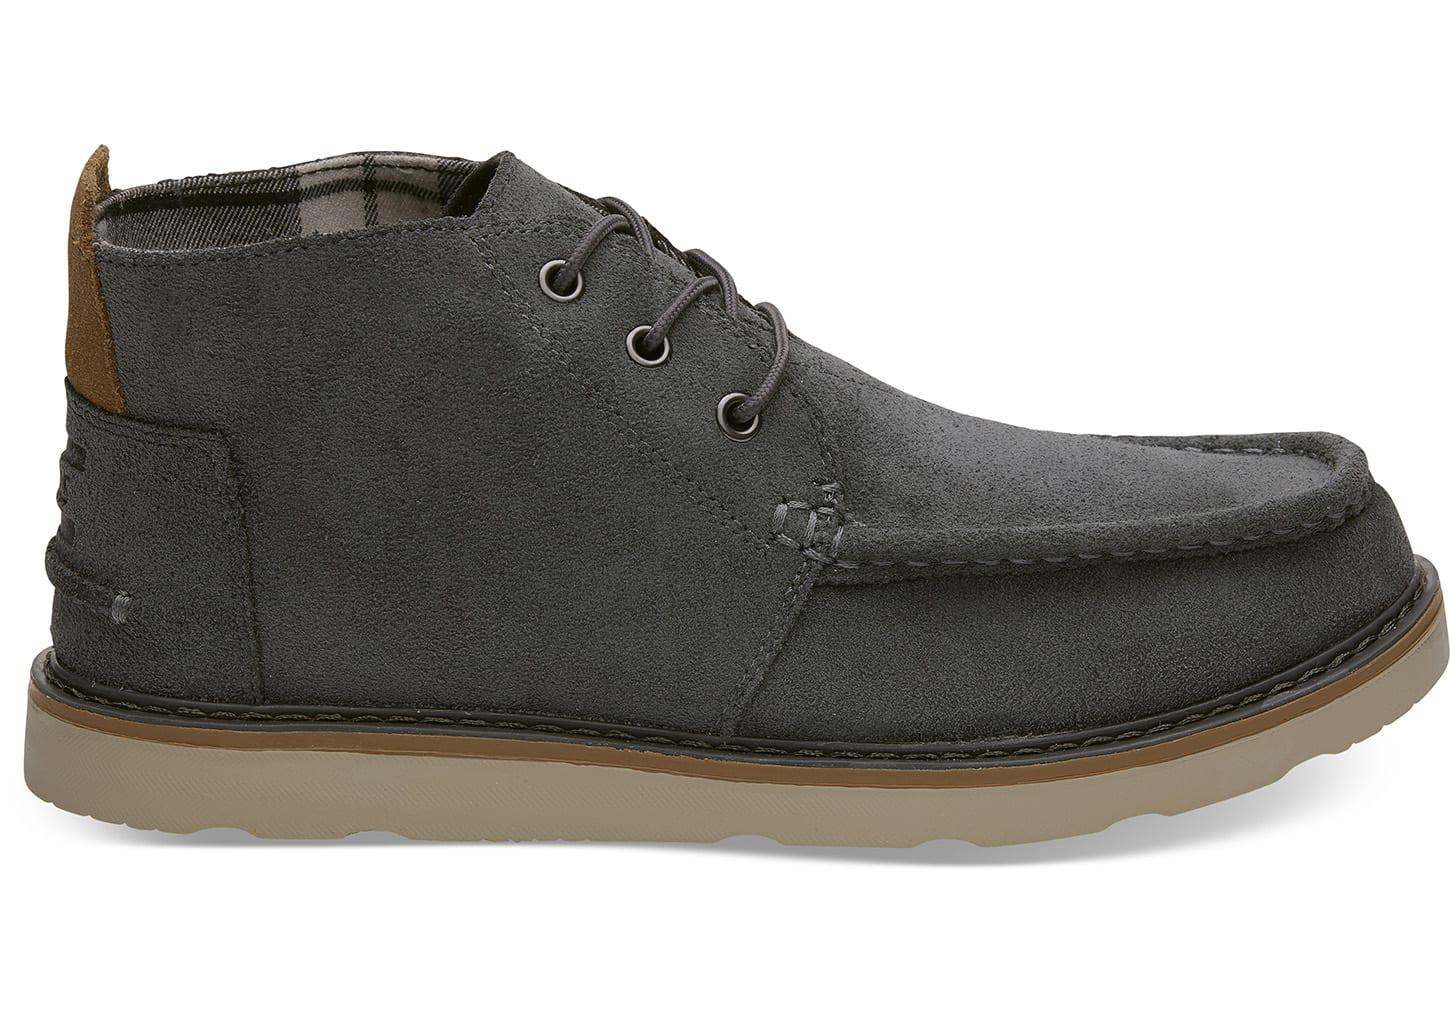 bc041eb9ac3 TOMS - Gray Waterproof Dark Grey Oiled Suede Men s Chukka Boots for Men -  Lyst. View fullscreen